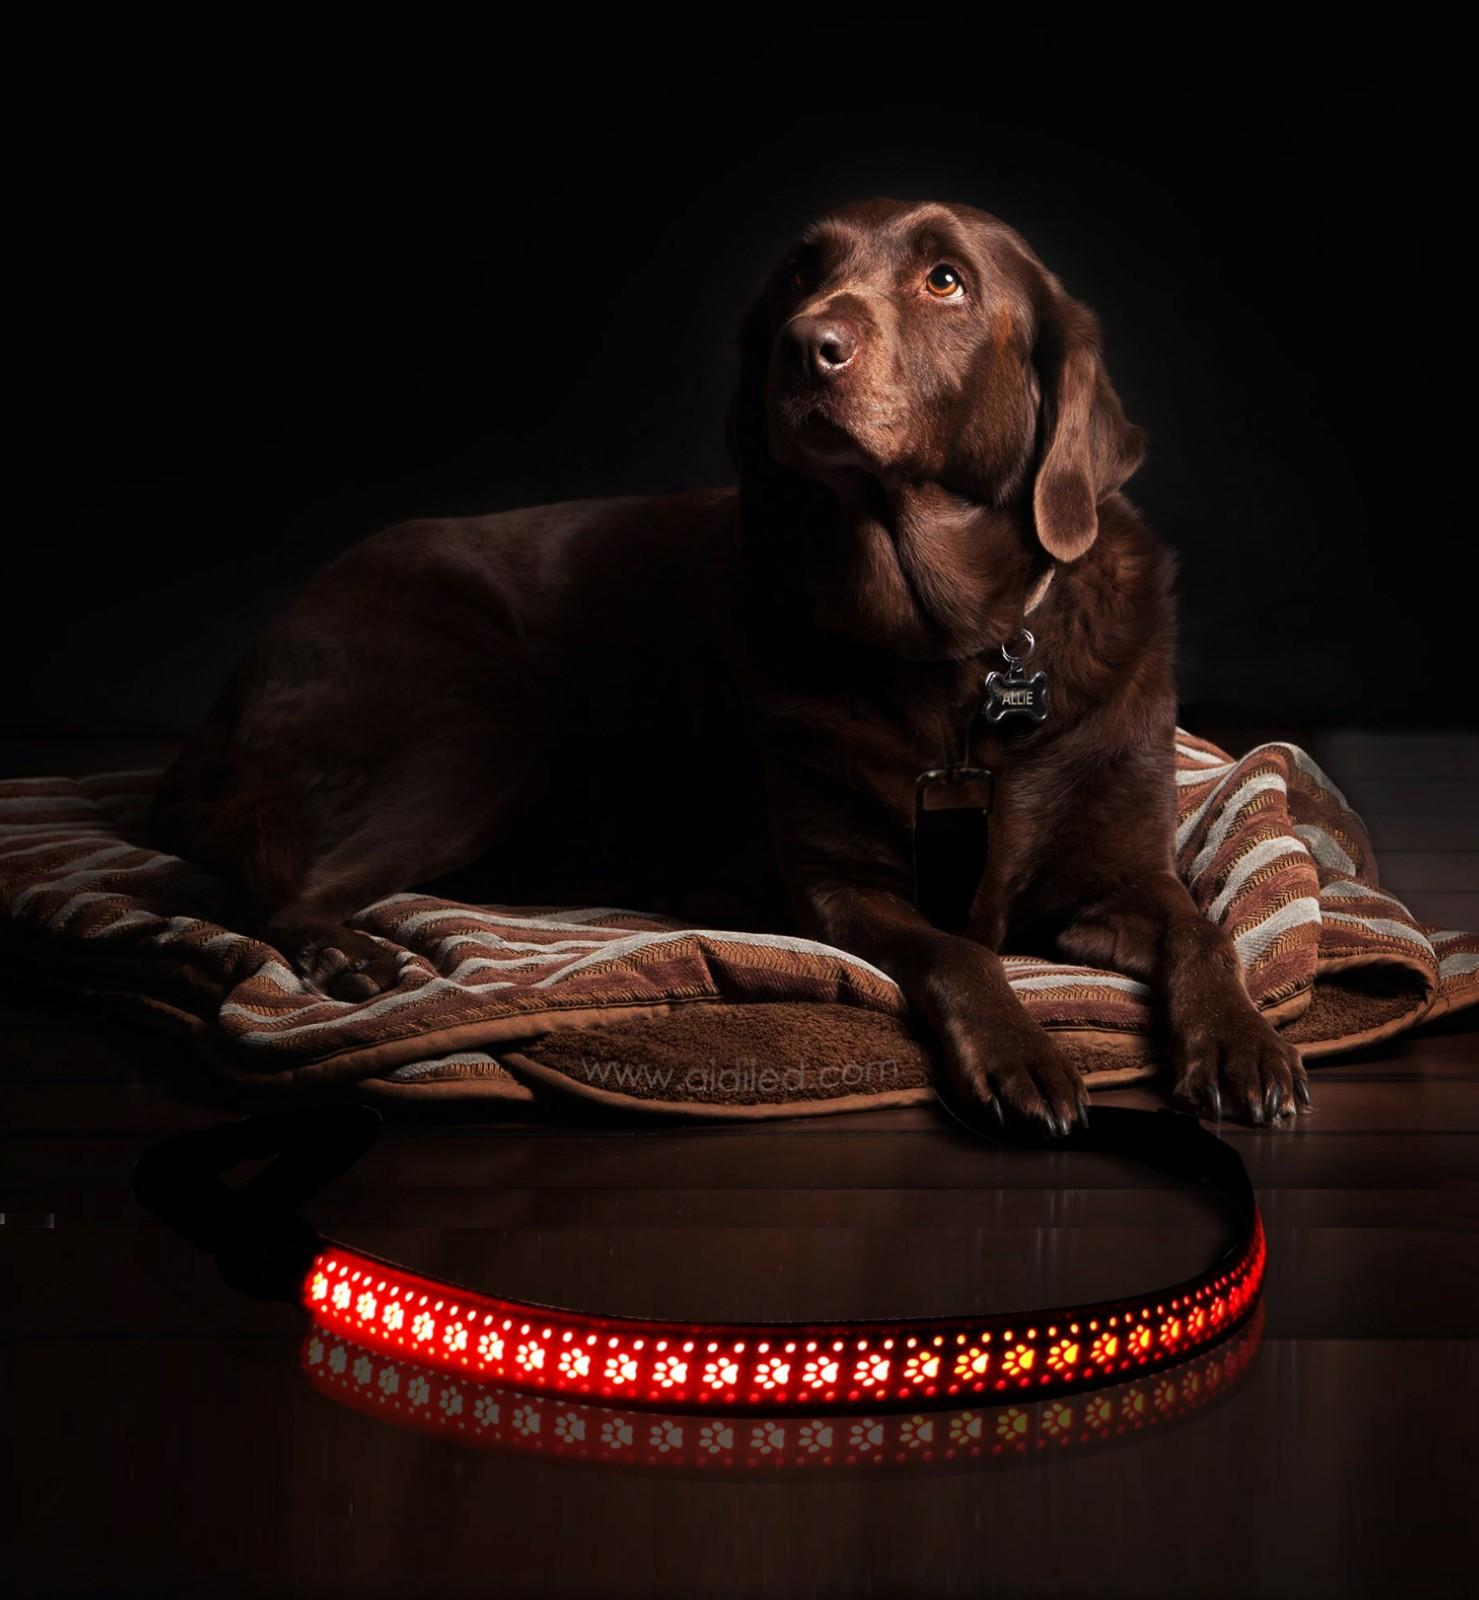 AIDI-High-quality Best Led Dog Leash | Led Pu Leather Dog Leash Aidi-l6